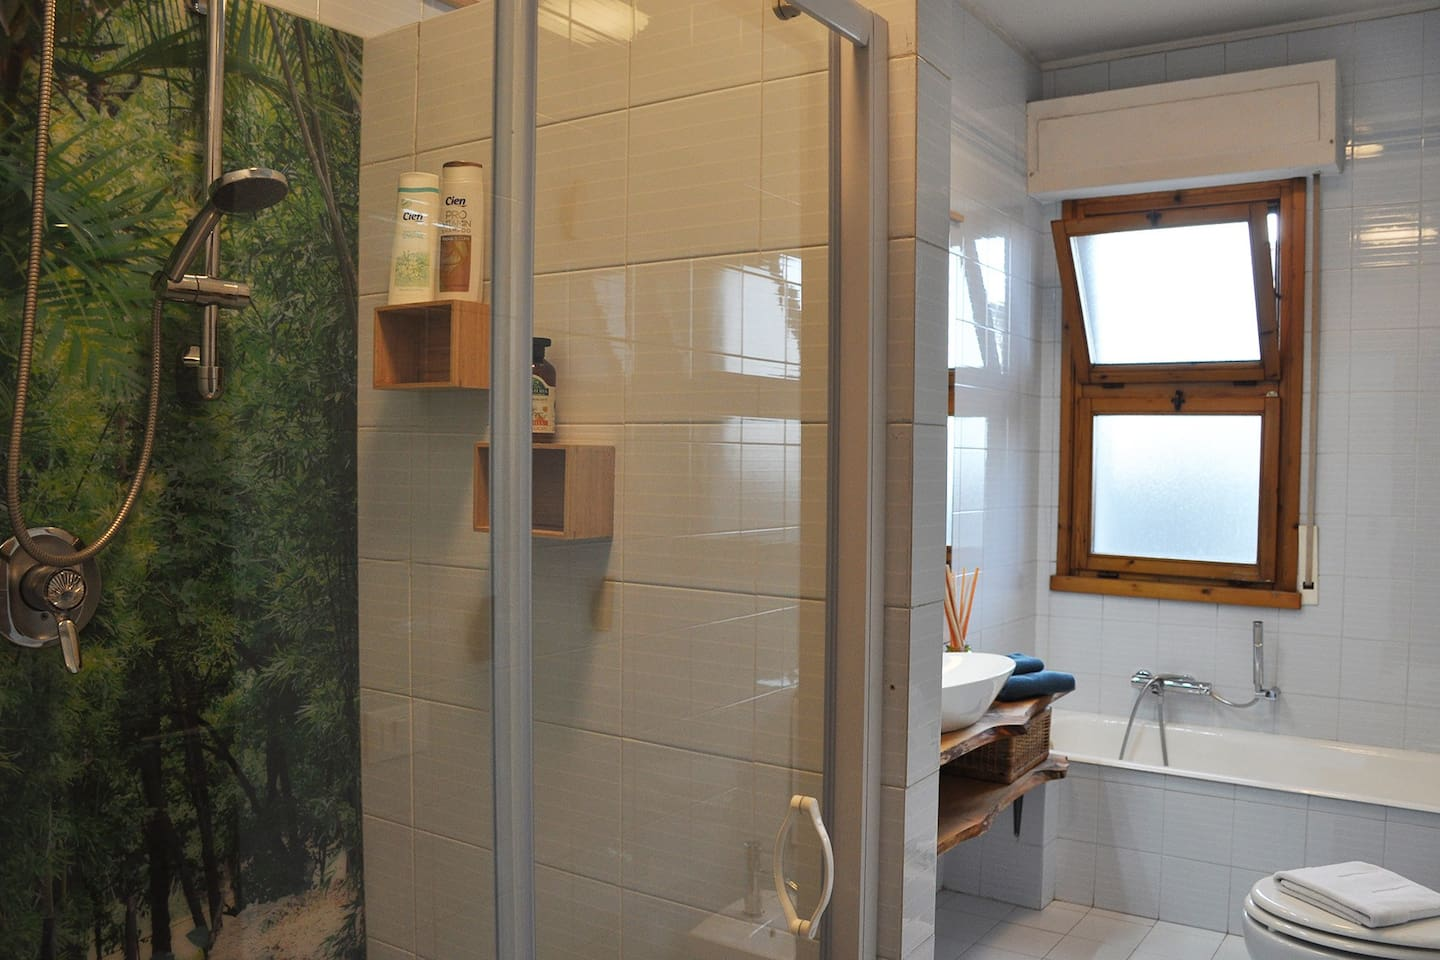 Shower with glass door and decorative wall.